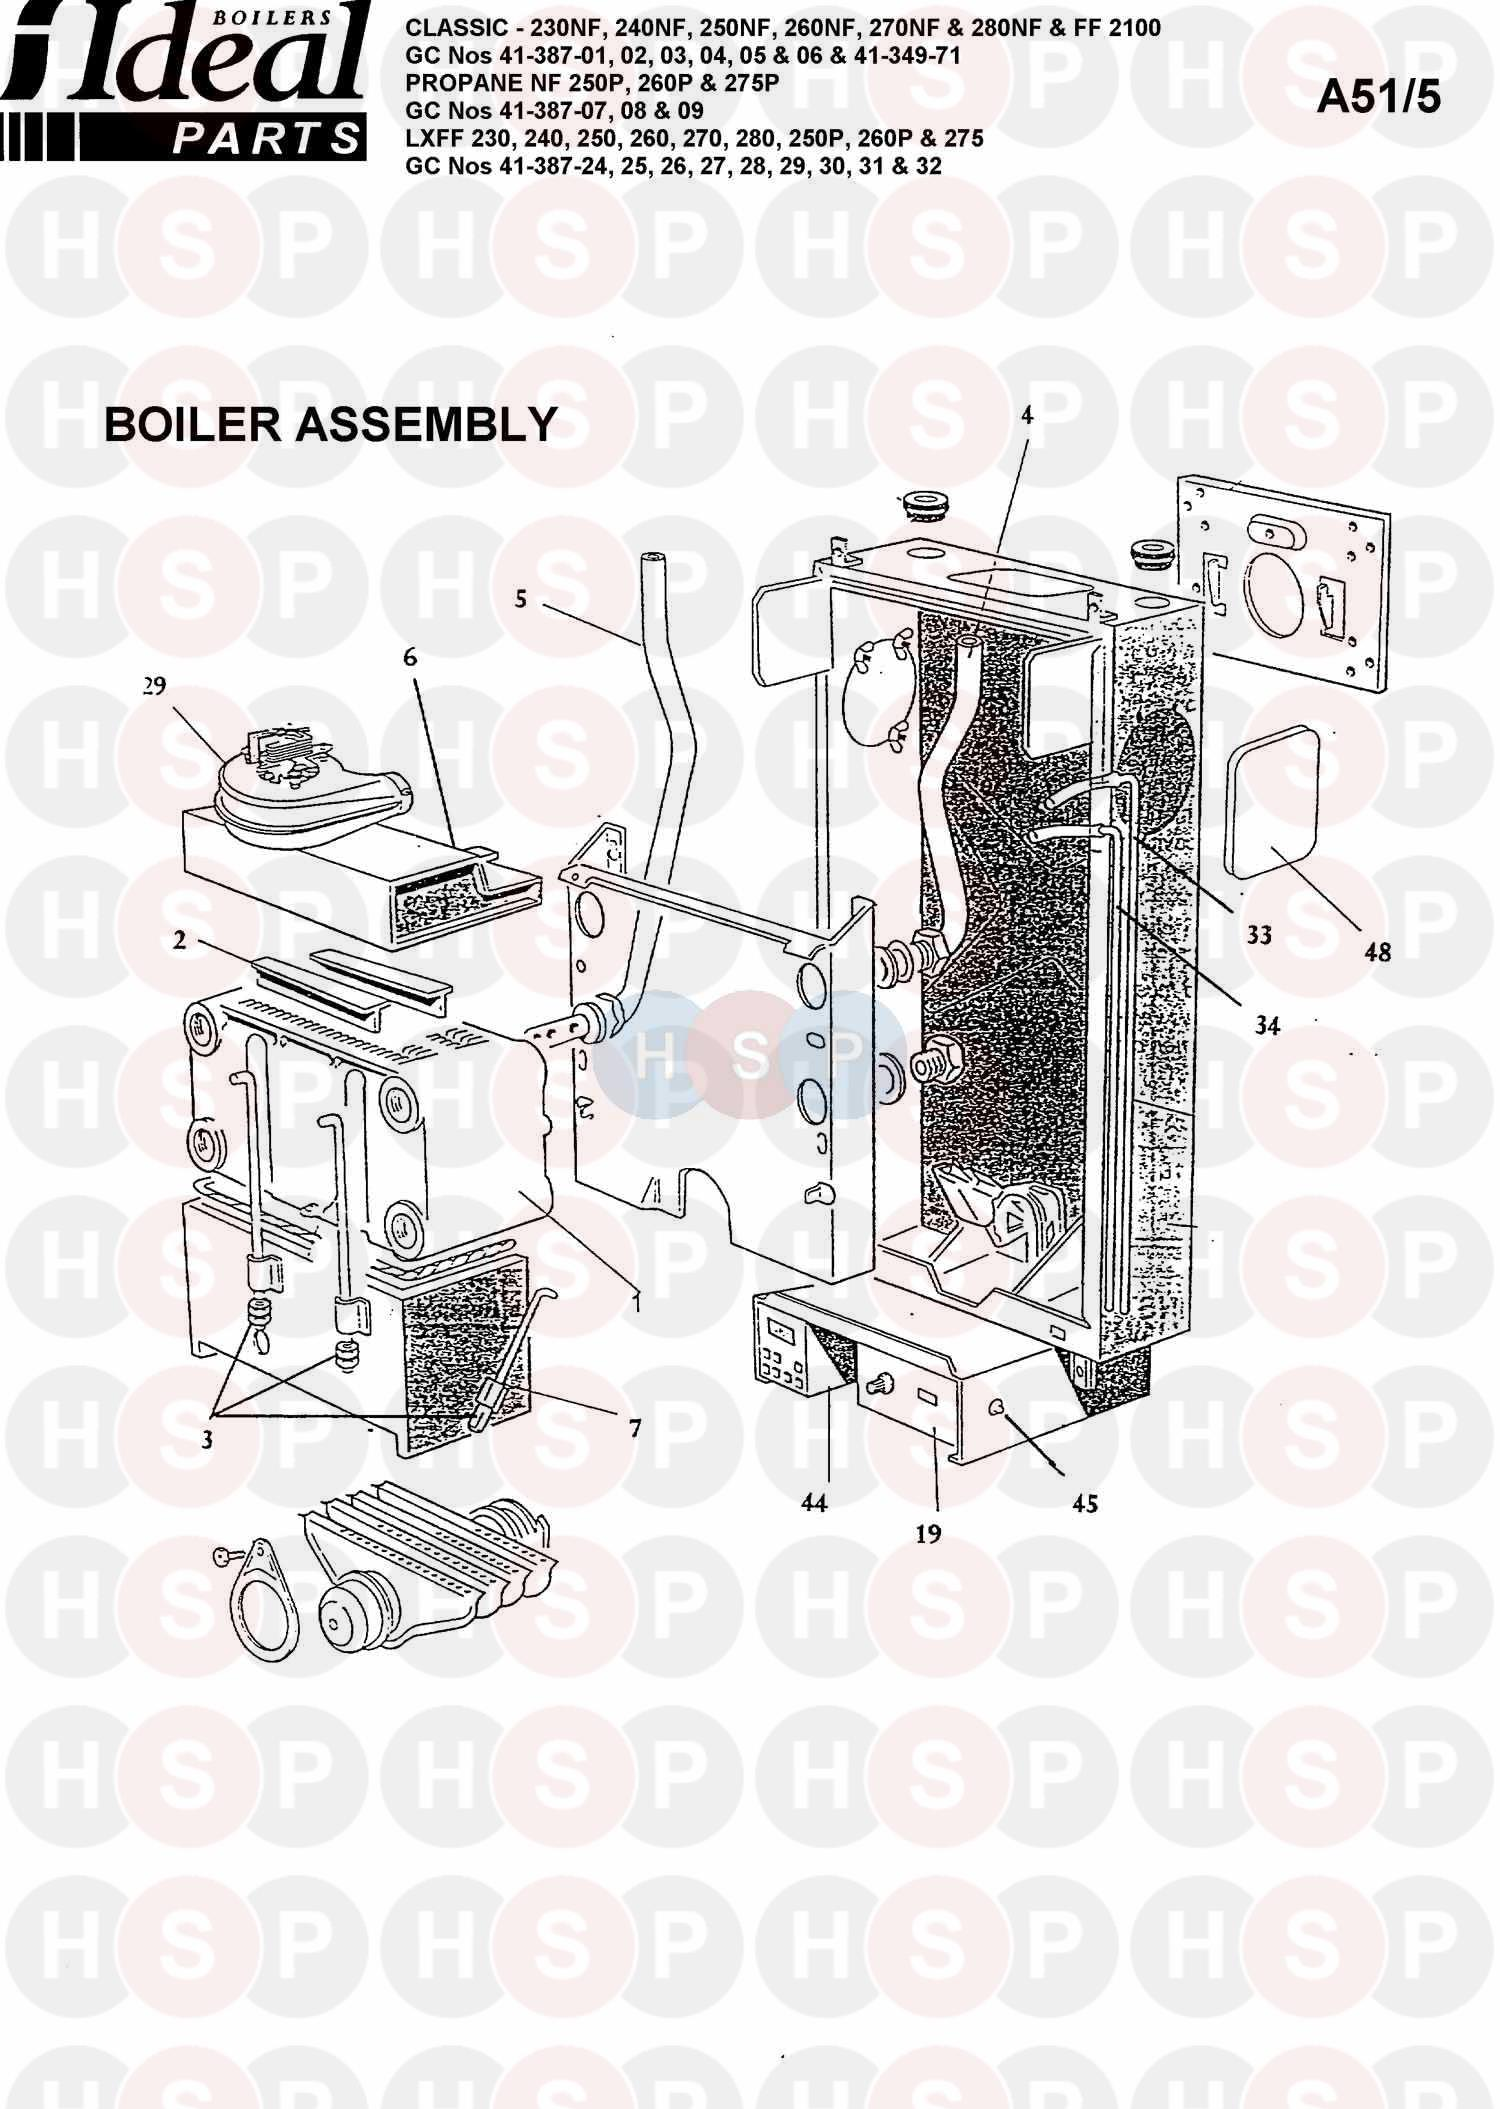 Ideal classic lxff 250 boiler assembly 1 diagram heating spare parts boiler assembly 1 diagram for ideal classic lxff 250 asfbconference2016 Gallery